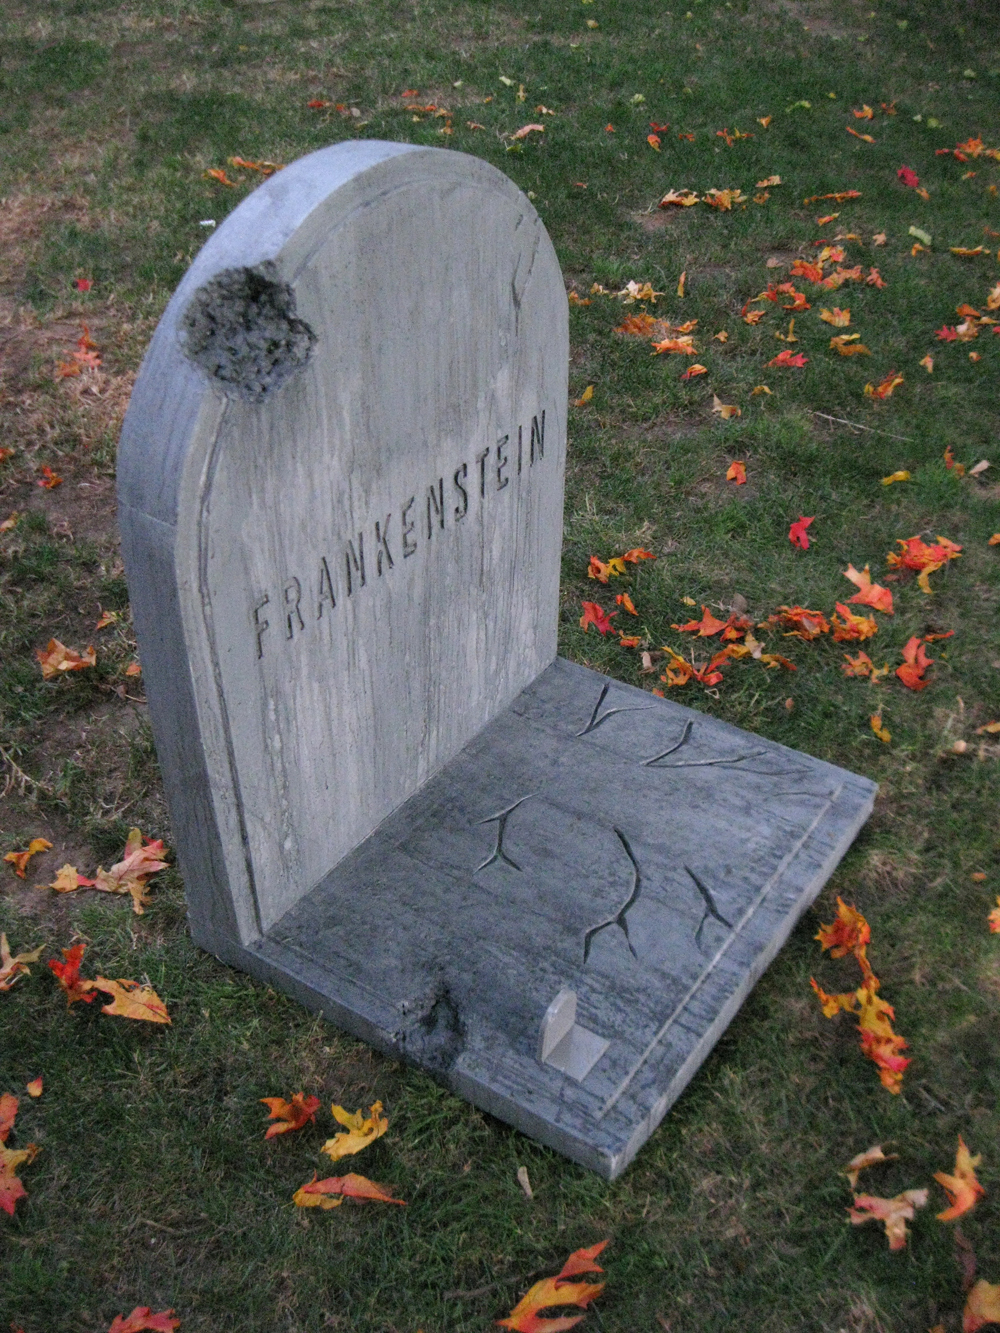 dave lowe design the blog: 28 days 'til halloween: lawn prop homage